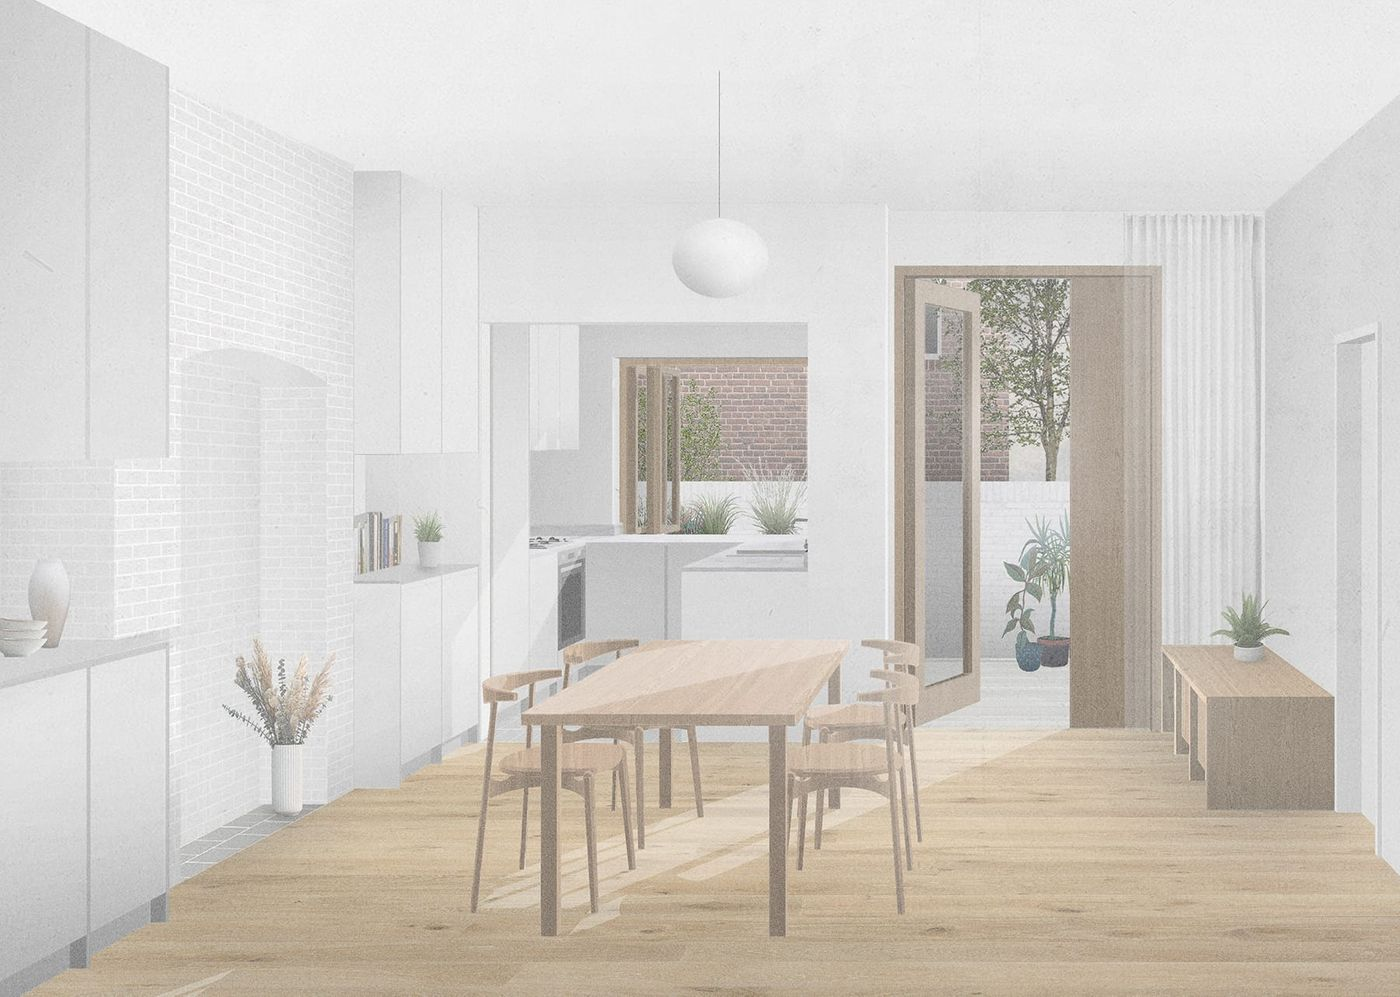 Internal view of the refurbished dining room and kitchen within the proposed dormer extension and refurbishment for the Whalley Road project designed by From Works.